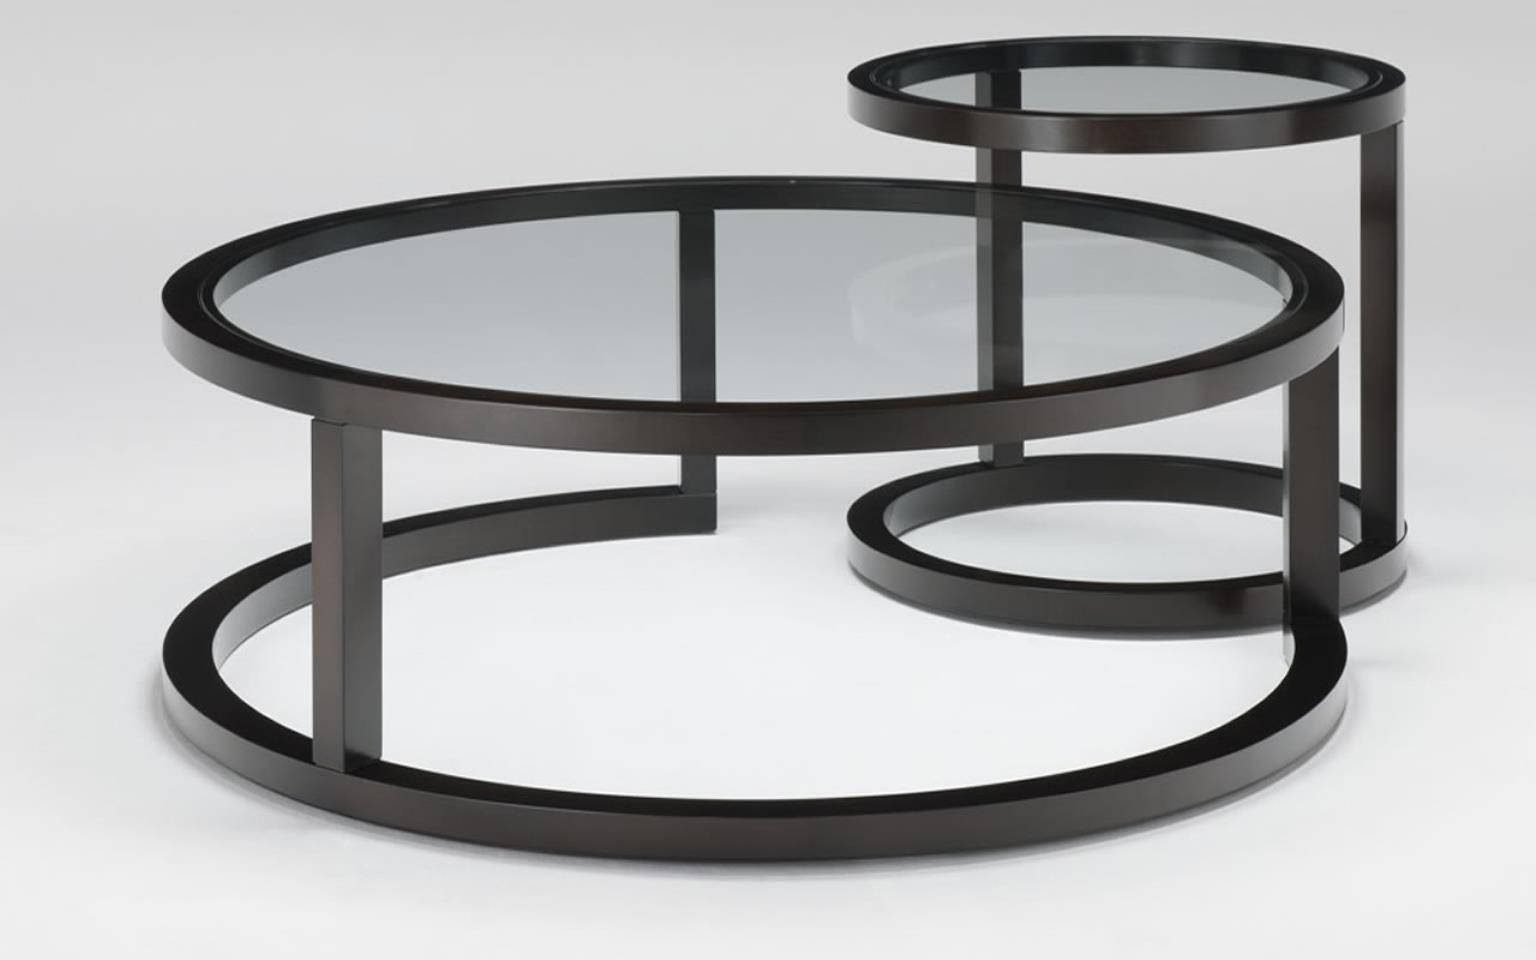 Hugues Chevalier Chez Maniglier With Images Coffee Table Round Wooden Coffee Table Side Coffee Table